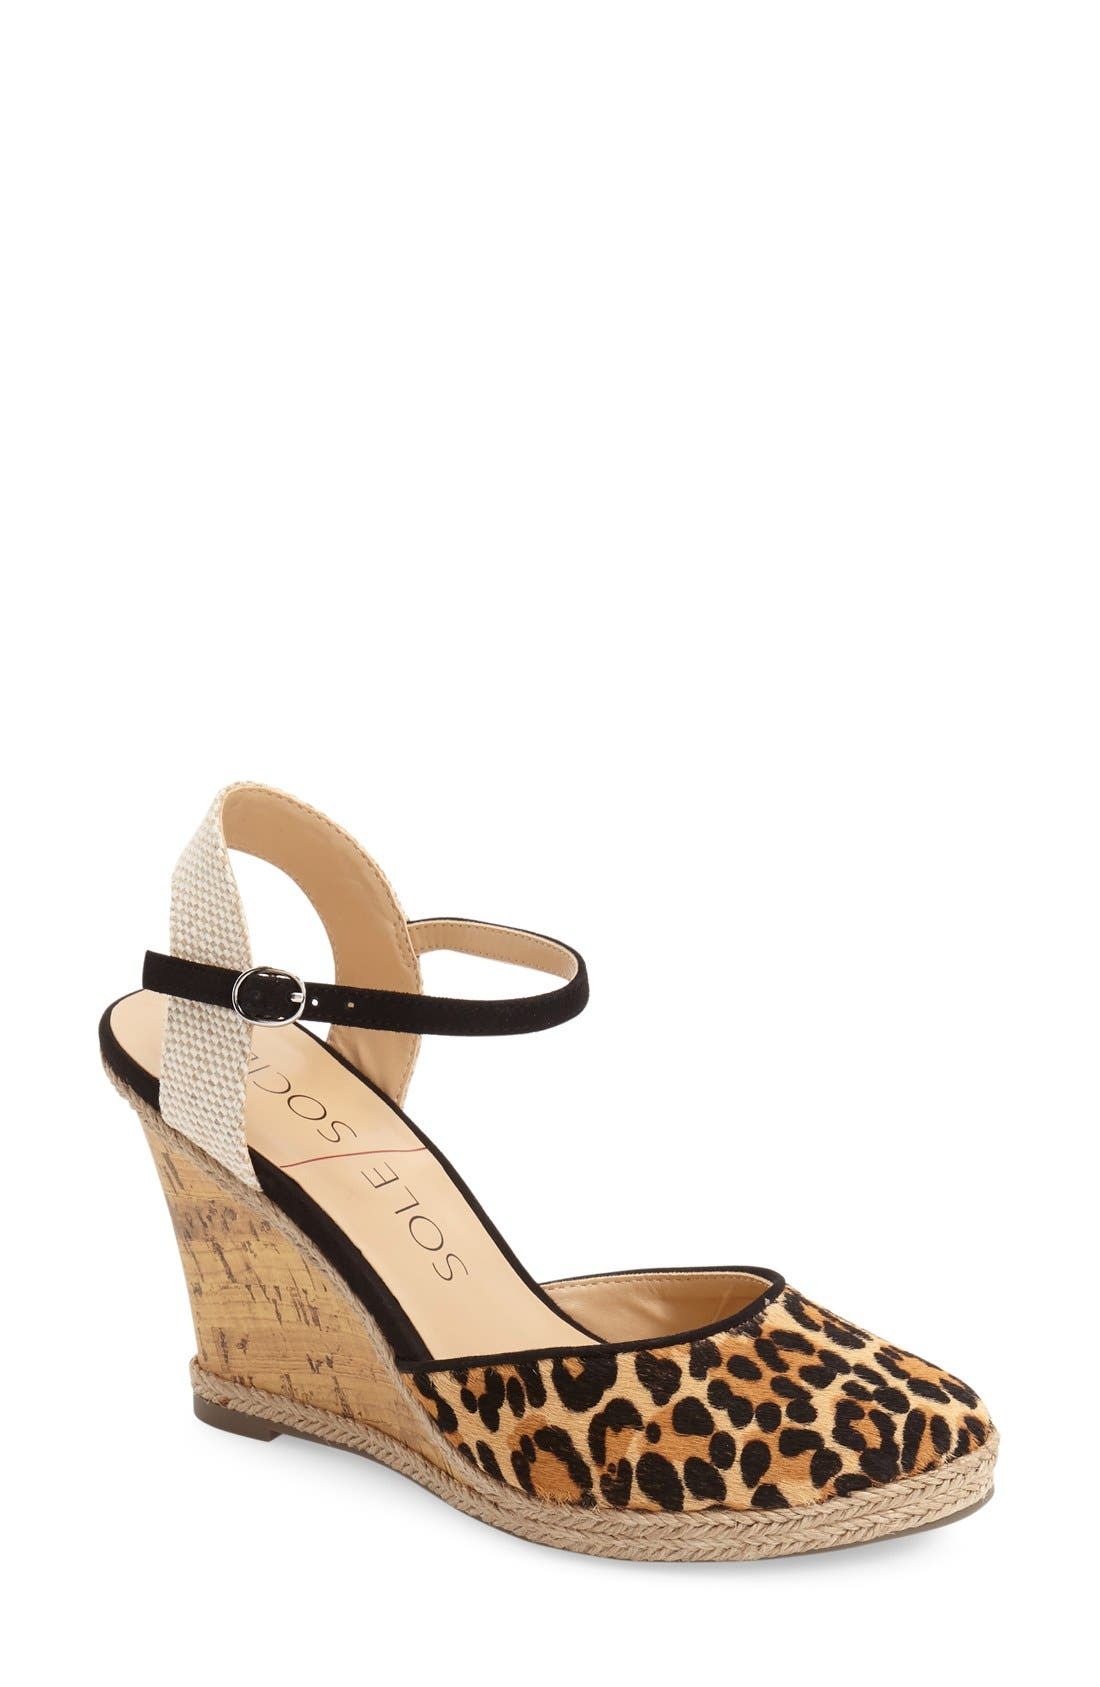 Alternate Image 1 Selected - Sole Society 'Lucy' Wedge Sandal (Women)